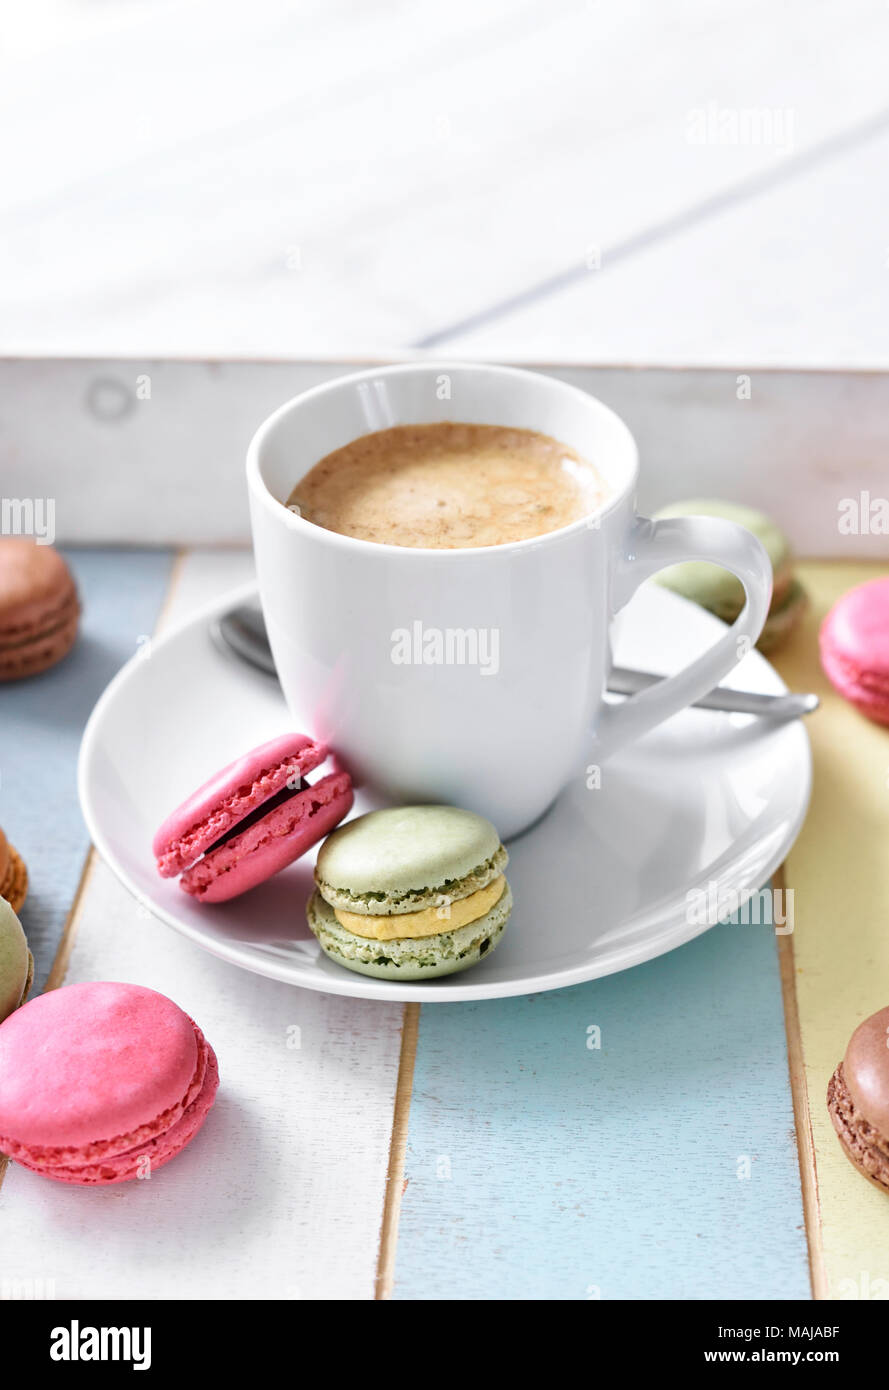 Delicious macaroons or macaron biscuits and coffee cup. Coffee break scene with colorful macarons and white table. Stock Photo